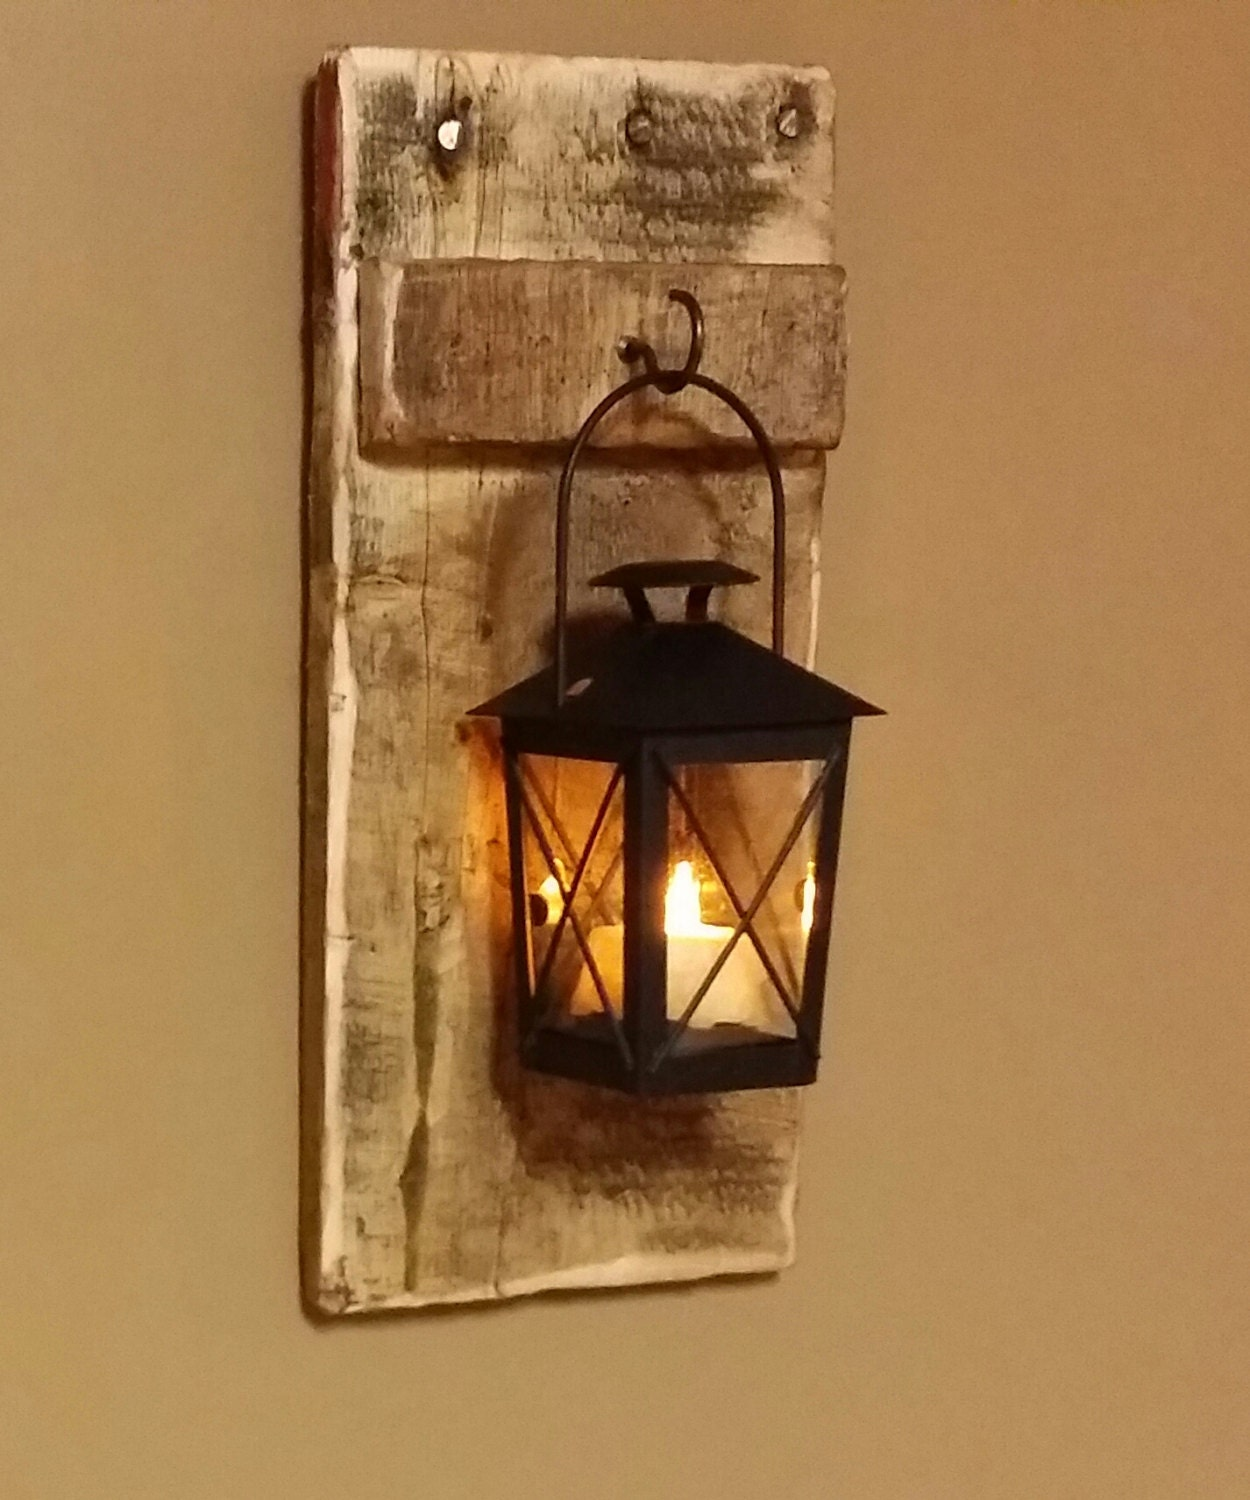 Rustic wood lantern candle holder 12 x 5 wood for Rustic wood candle holders